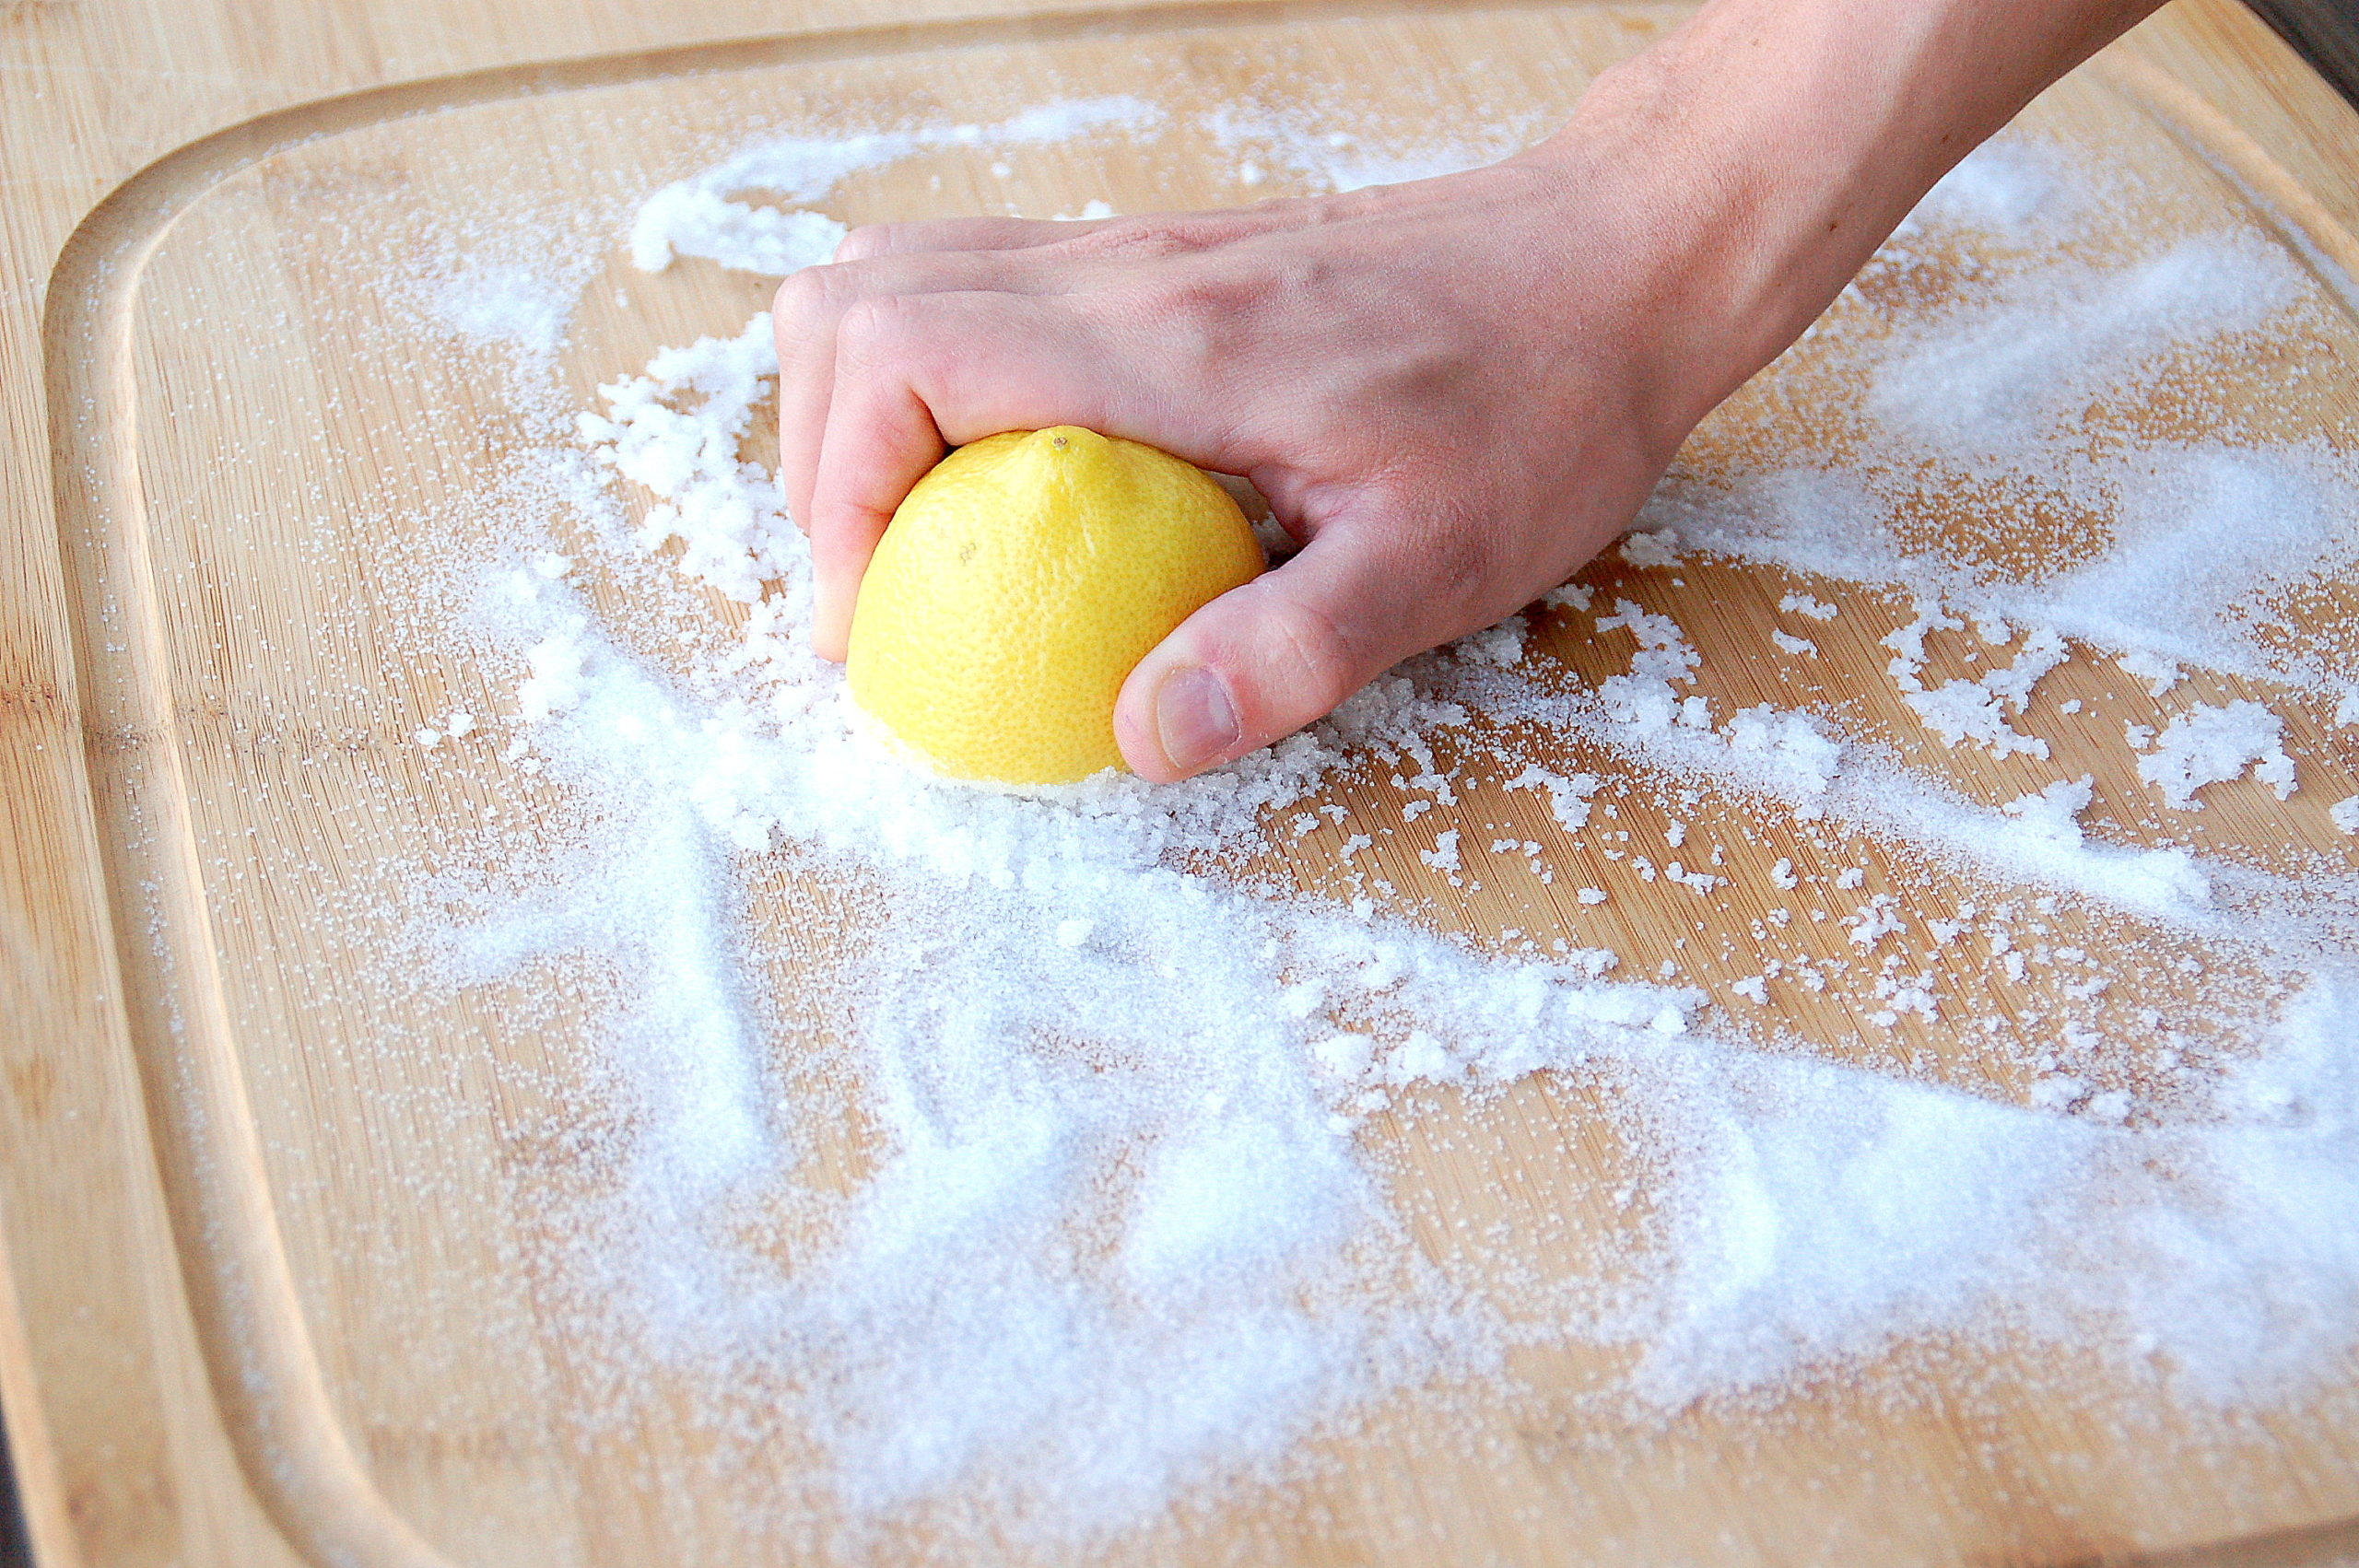 Removing stains and odors from wood cutting board